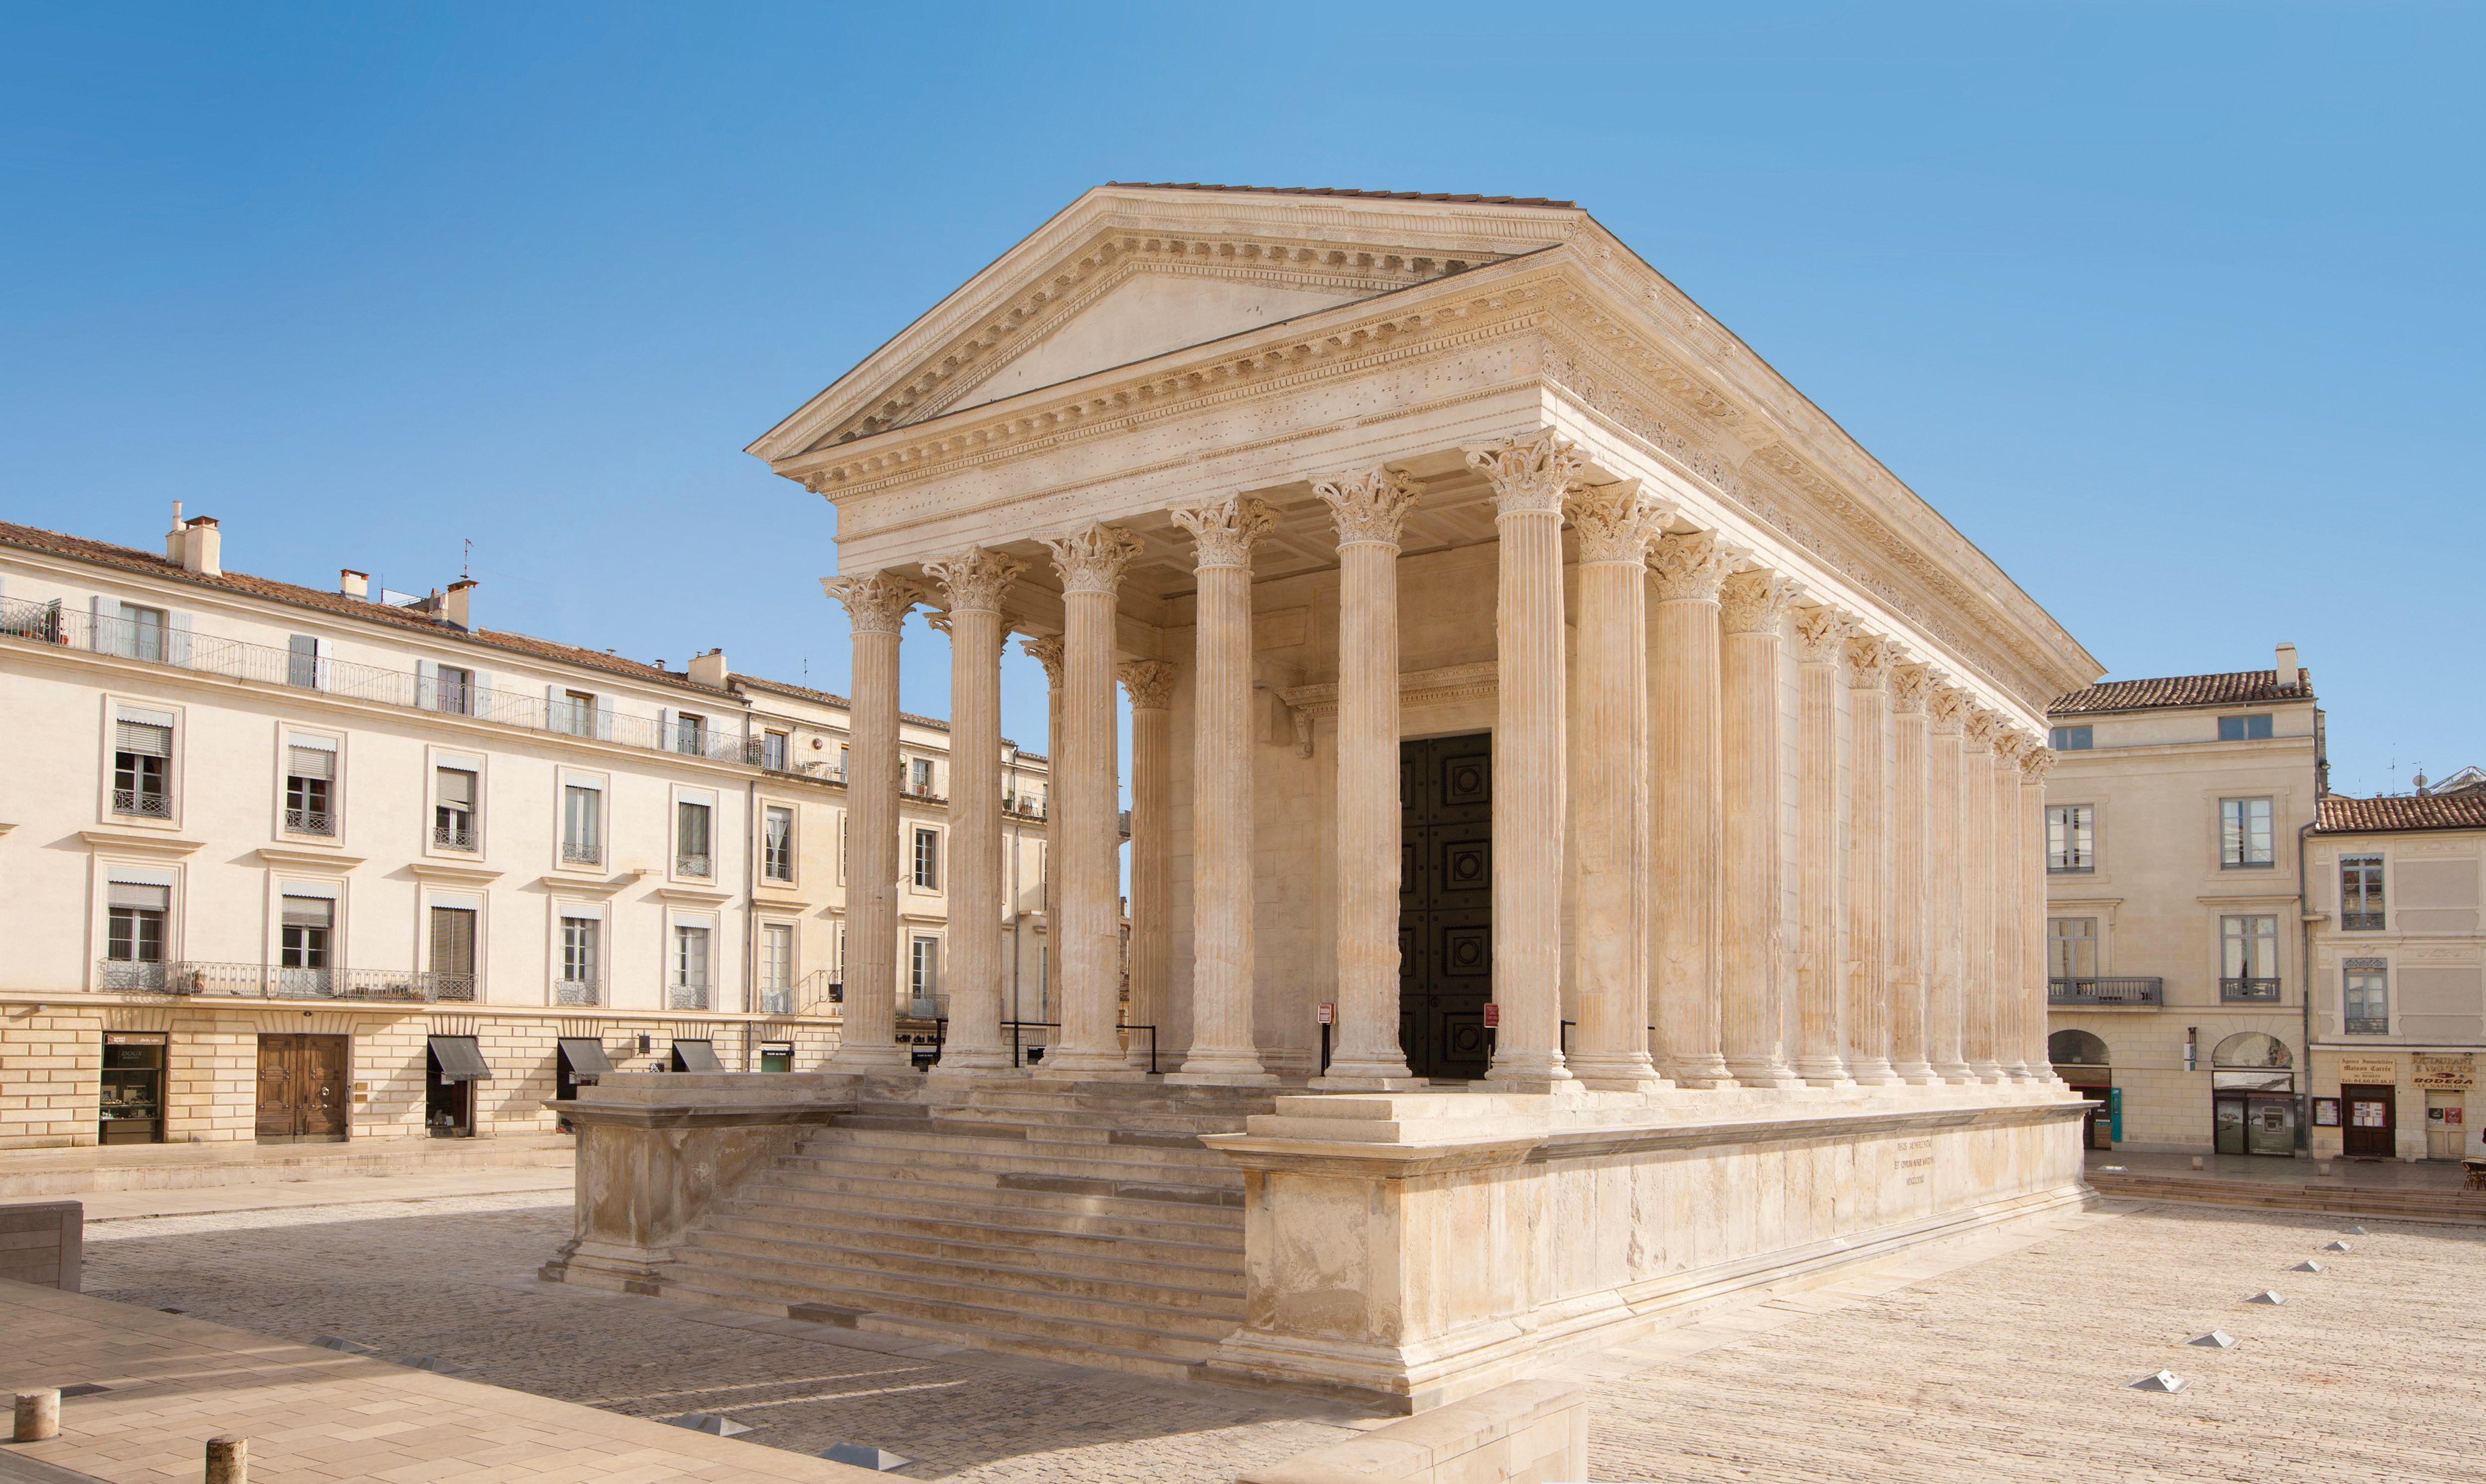 Maison Carrée. Photo OT Nîmes O.Maynard (2)